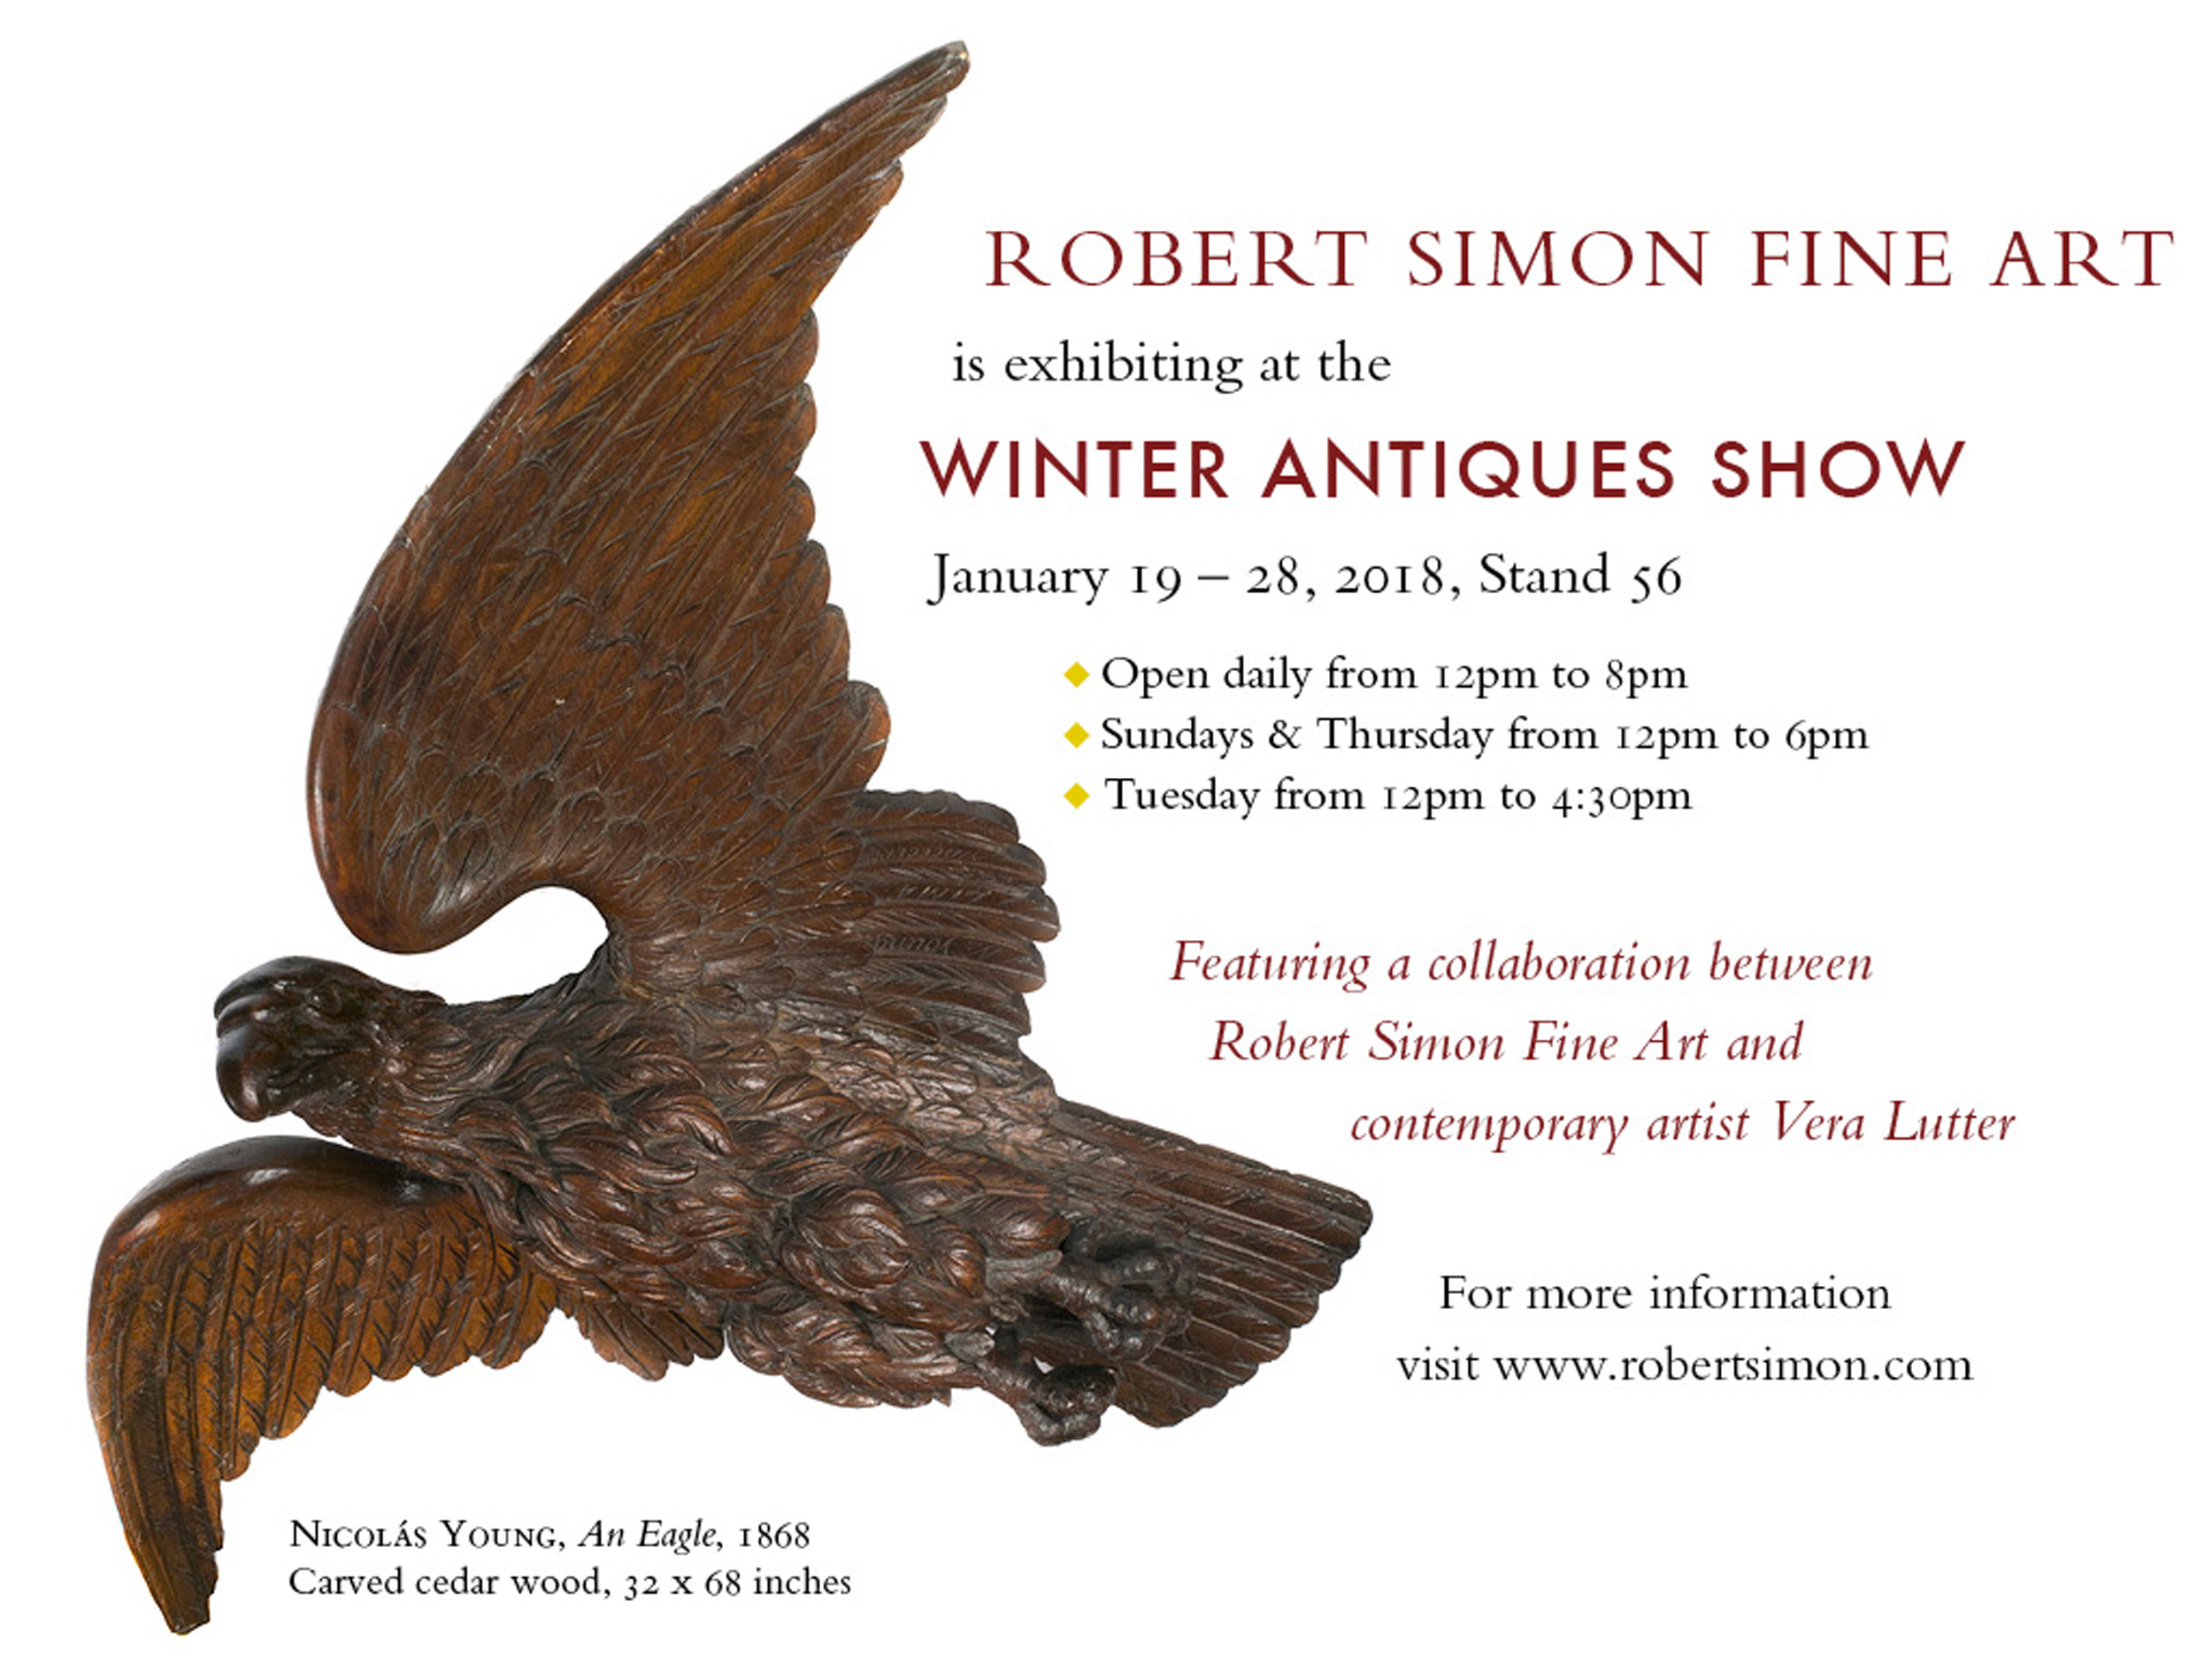 Robert Simon Fine Art is proud to be exhibiting at the 2018 Winter Antiques Show. JANUARY 19 - 28, 2018 Booth 56   Debuting a collaboration between the artist Vera Lutter and Robert Simon Fine Art! For more information on the artist: http://veralutter.net/   HOURS: OPEN DAILY : 12 PM–8 PM SUNDAYS & THURSDAY : 12 PM–6 PM TUESDAY :  12 PM–4:30 PM   SPECIAL EVENTS: •    OPENING NIGHT PARTY -  January 18, 2018 (Purchase tickets here ) •    MUSEUM NIGHT PARTY* -  January 19, 2018       *Please note that an institutional email address is required for registration. RSVP here. •    YOUNG COLLECTORS' NIGHT PARTY - January 25, 2018 (Purchase tickets here)   Daily entry tickets available to our clients and colleagues upon request.